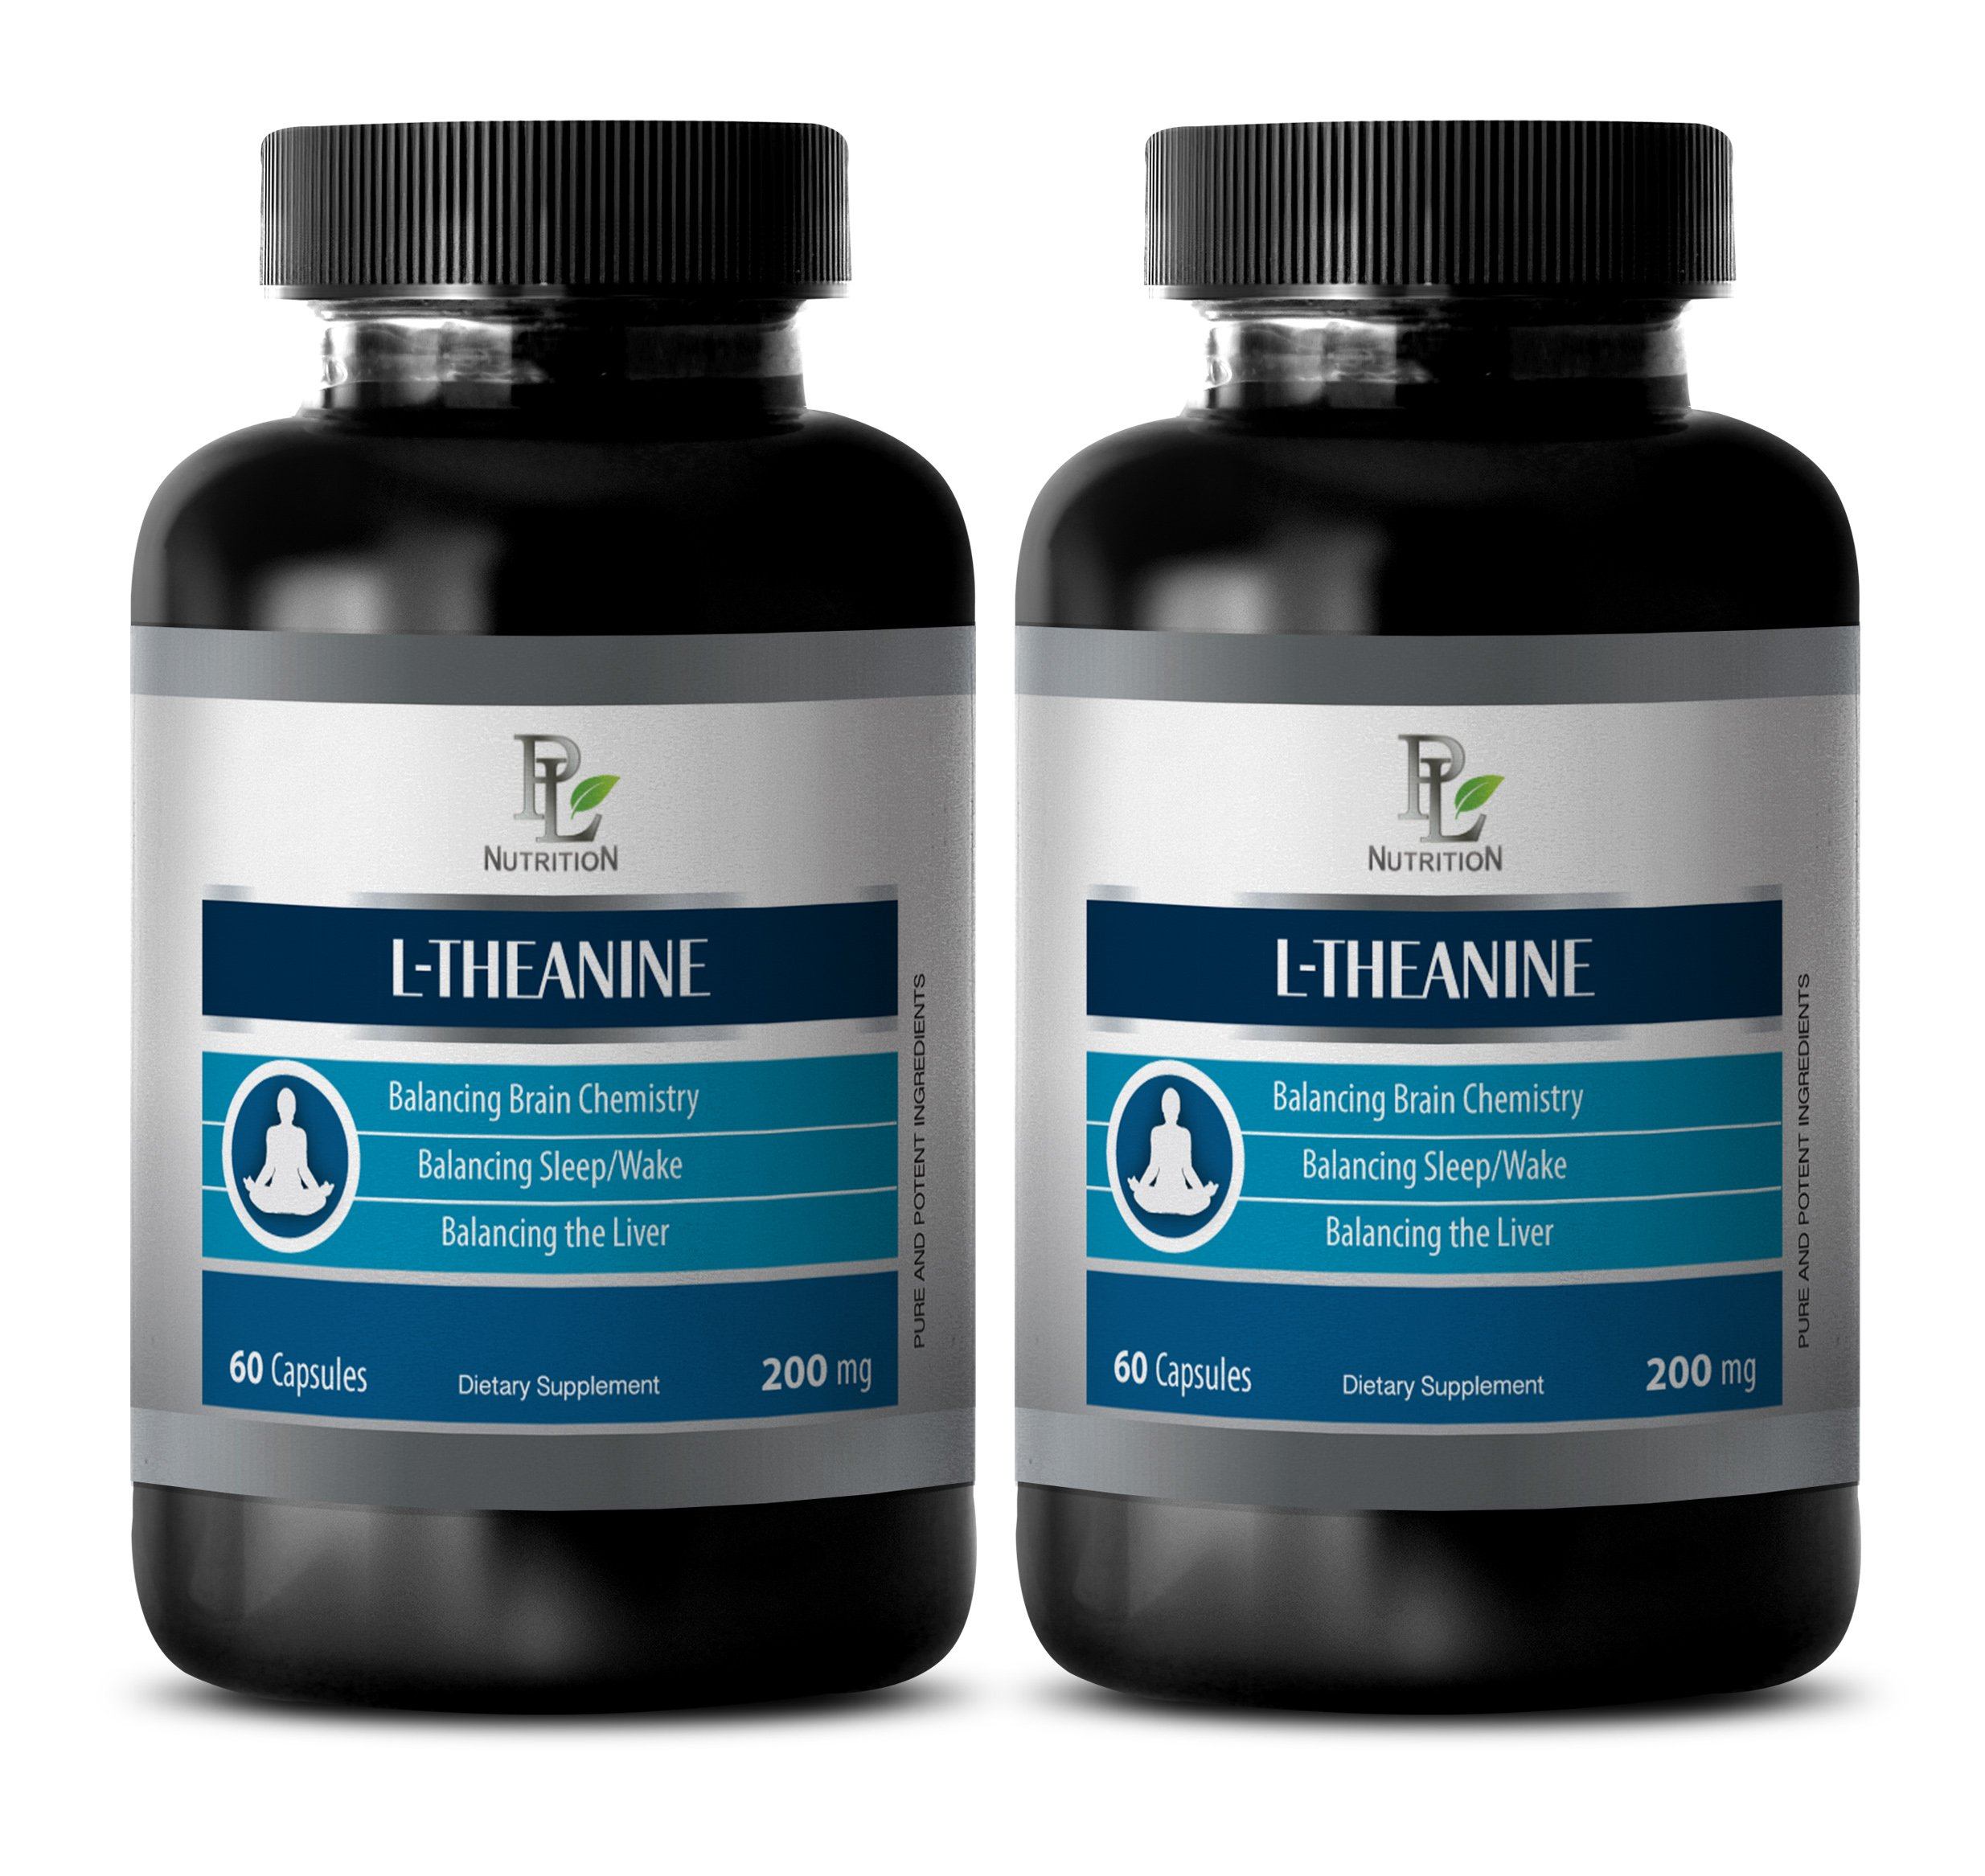 sleeping aid calm - L-Theanine 200MG - energy boost - 2 Bottles (120 Capsules)